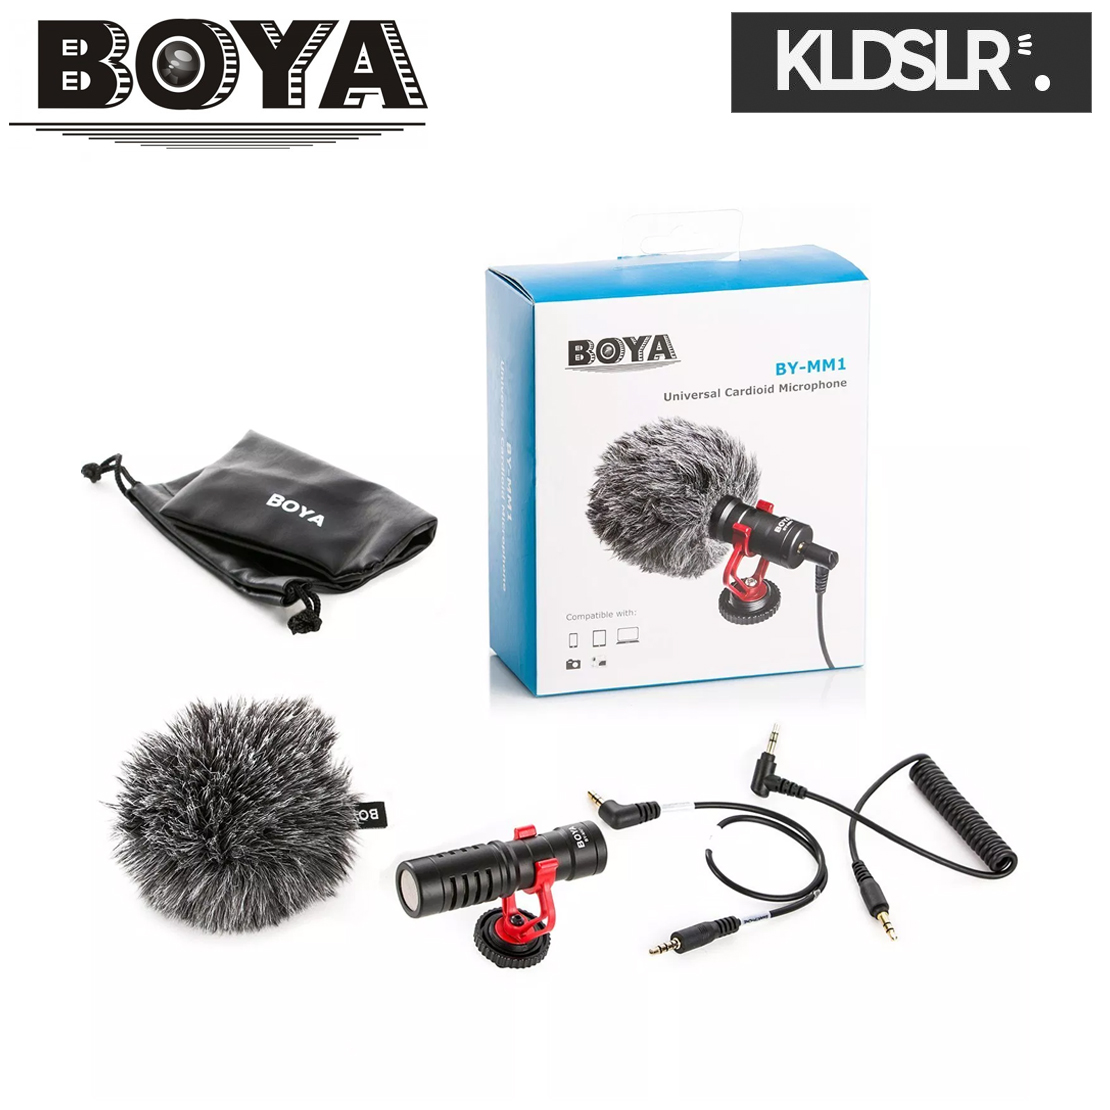 BOYA Universal Compact Shotgun Microphone BY-MM1